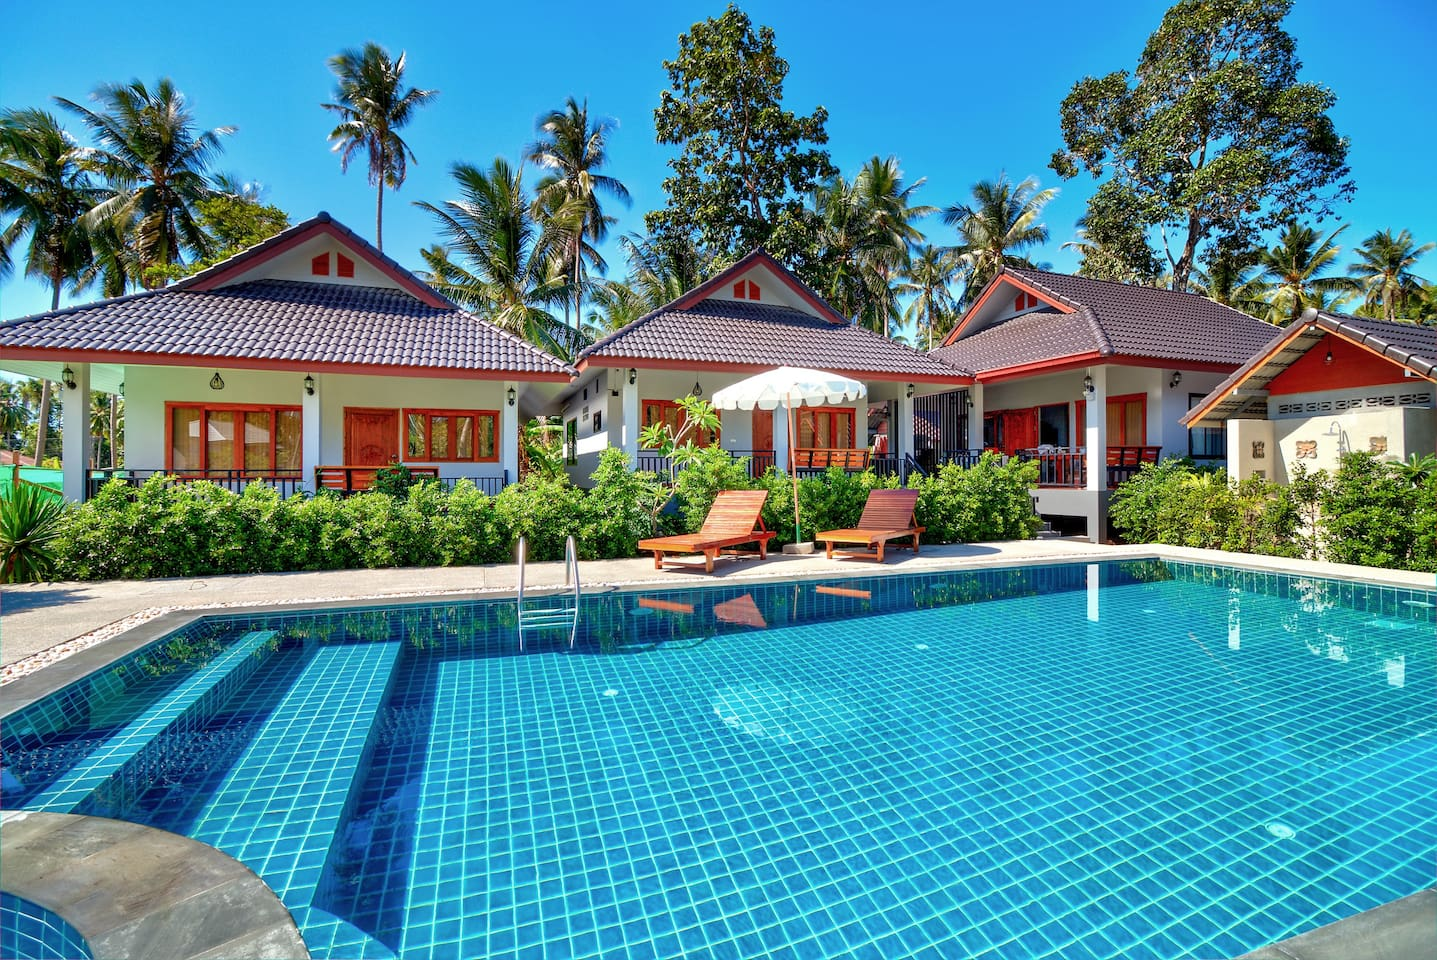 Starry Home Resort with the ozone swimming pool